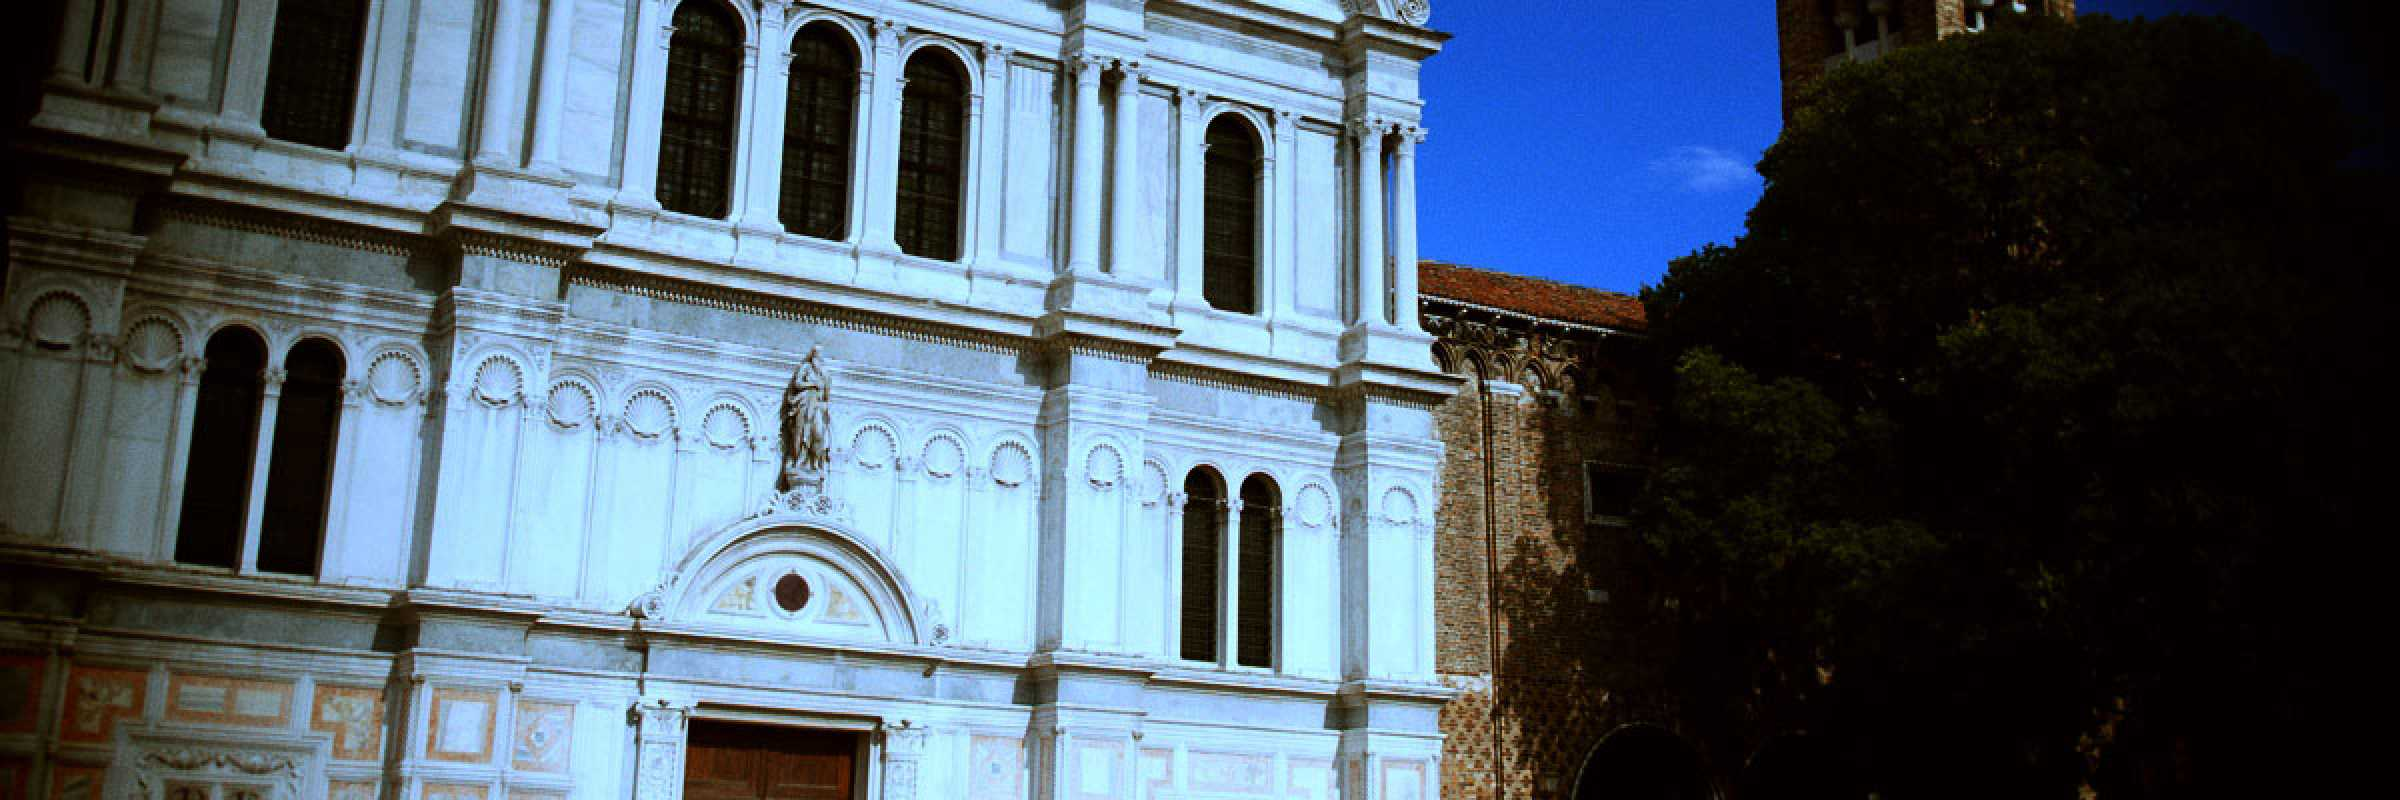 The Church of San Zaccaria.